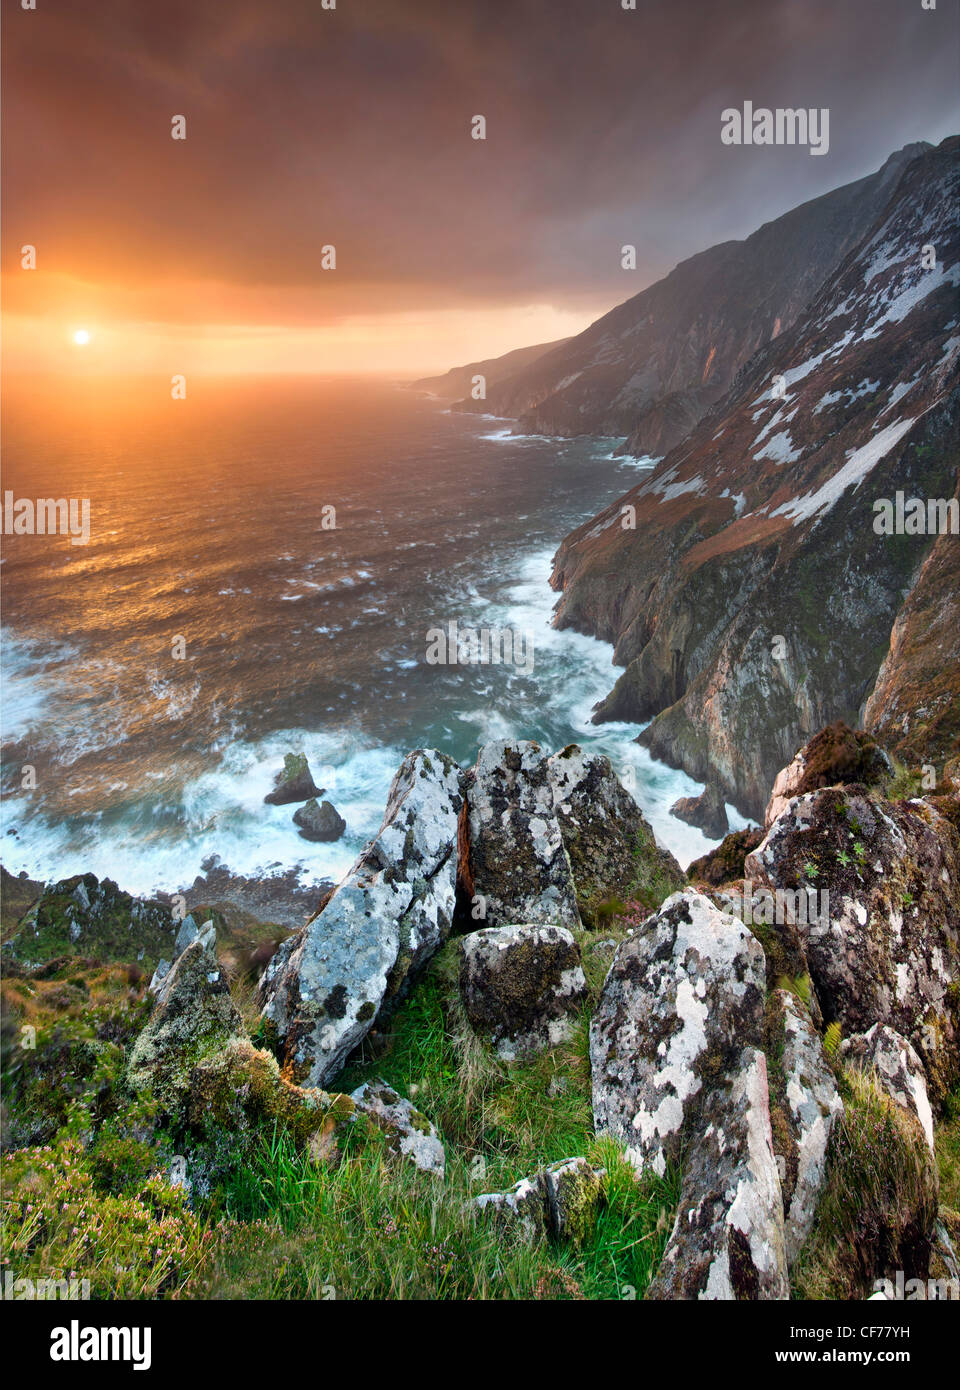 Slieve League cliffs at dusk, situated on the West coast of Donegal. - Stock Image